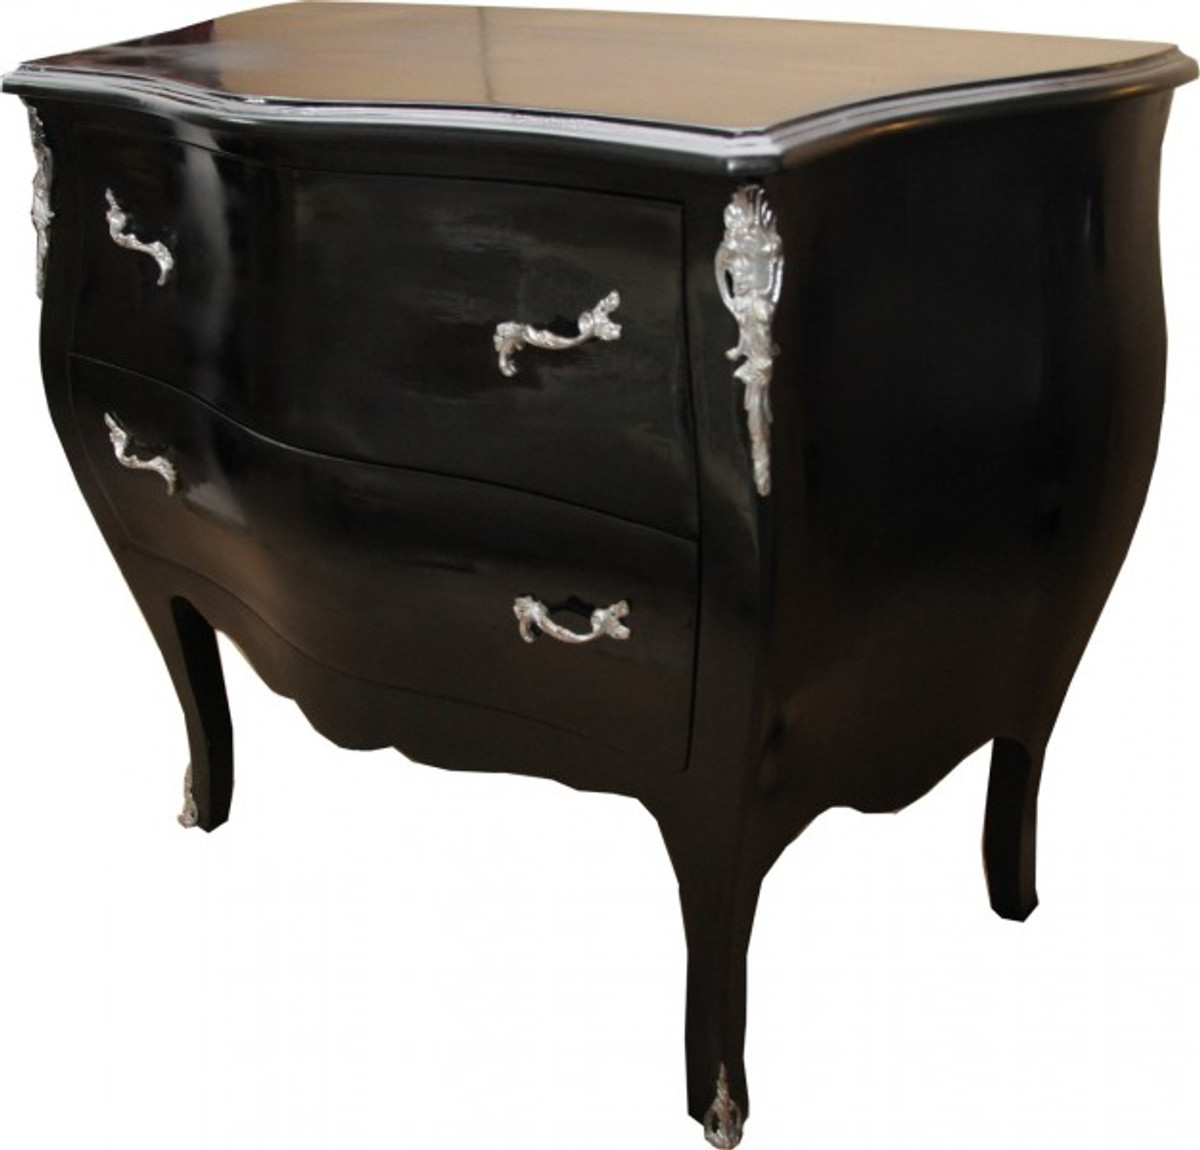 casa padrino barock kommode schwarz 103 cm antik stil m bel kommoden barock kommoden. Black Bedroom Furniture Sets. Home Design Ideas